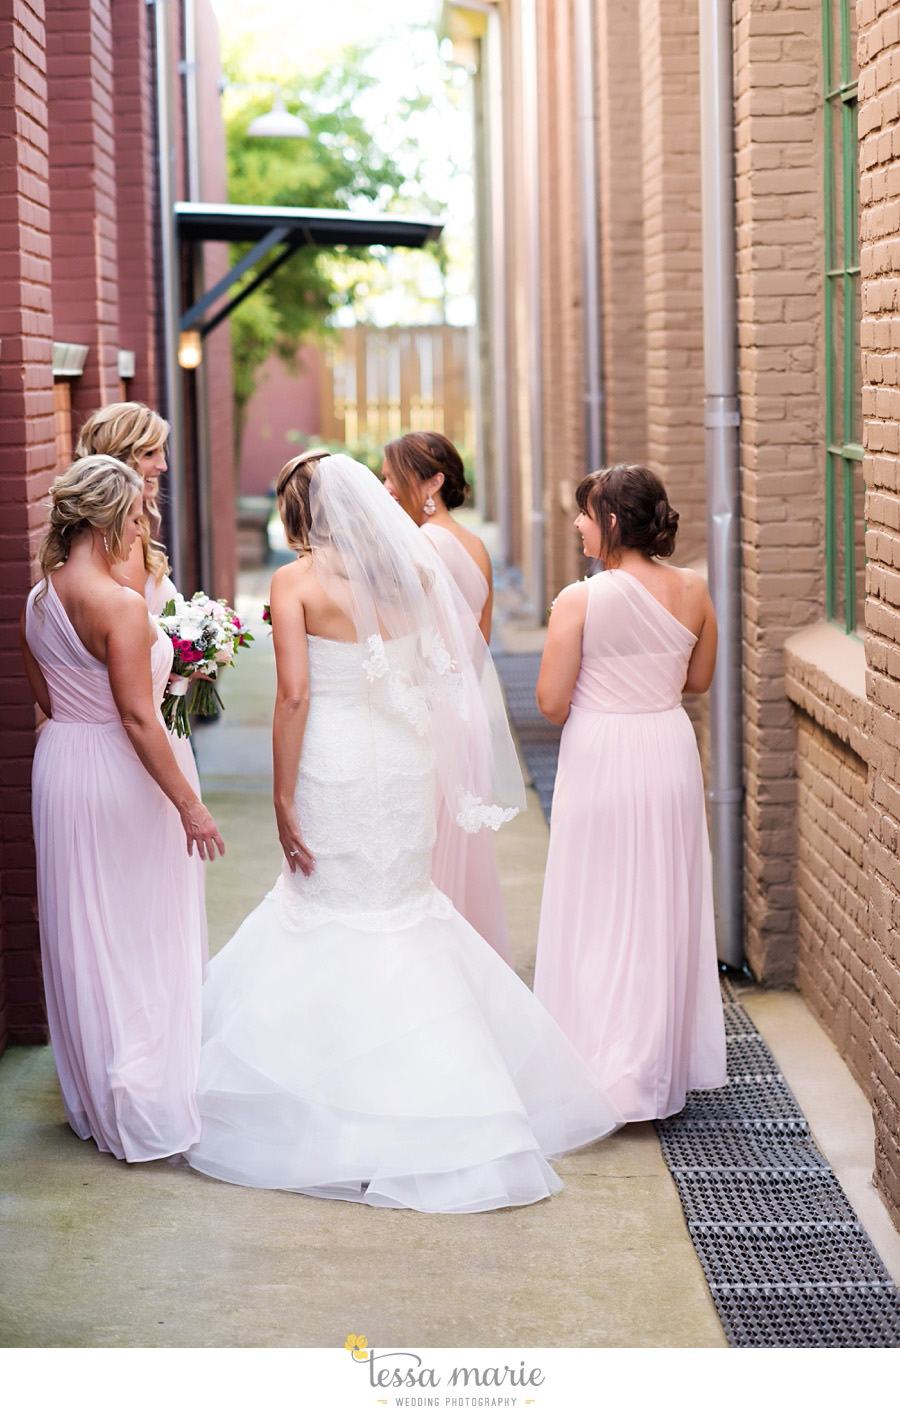 Puritan_mill_wedding_foundry_wedding_pictures_Tessa_marie_weddings_circle_of_love_weddings_atlantas_best_wedding_photographer_pictures_0018